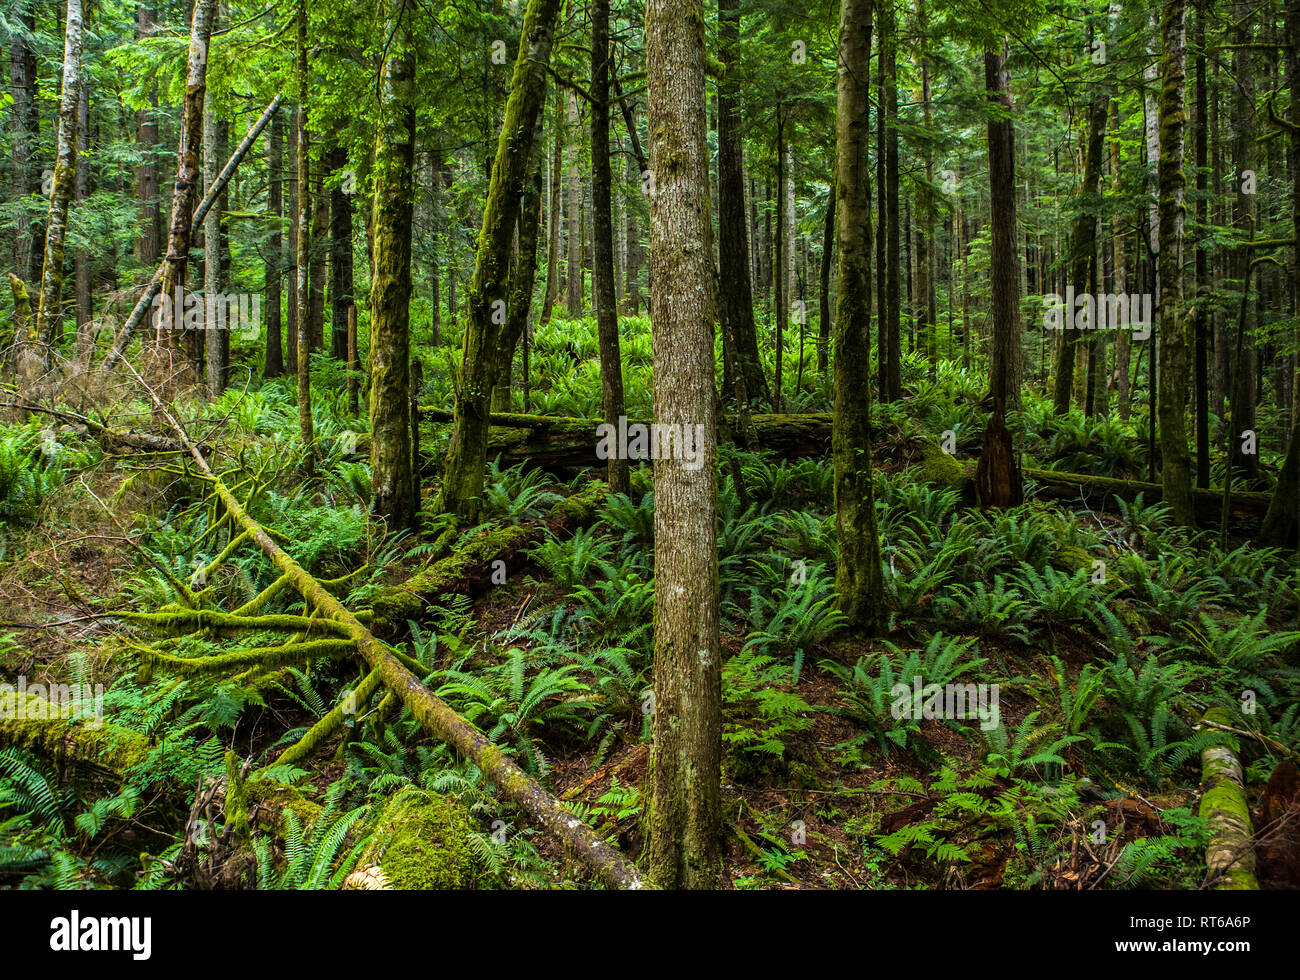 A forest scene in the Cascades of Western Washington State, USA. The Little (or Lil) Si Trail. - Stock Image